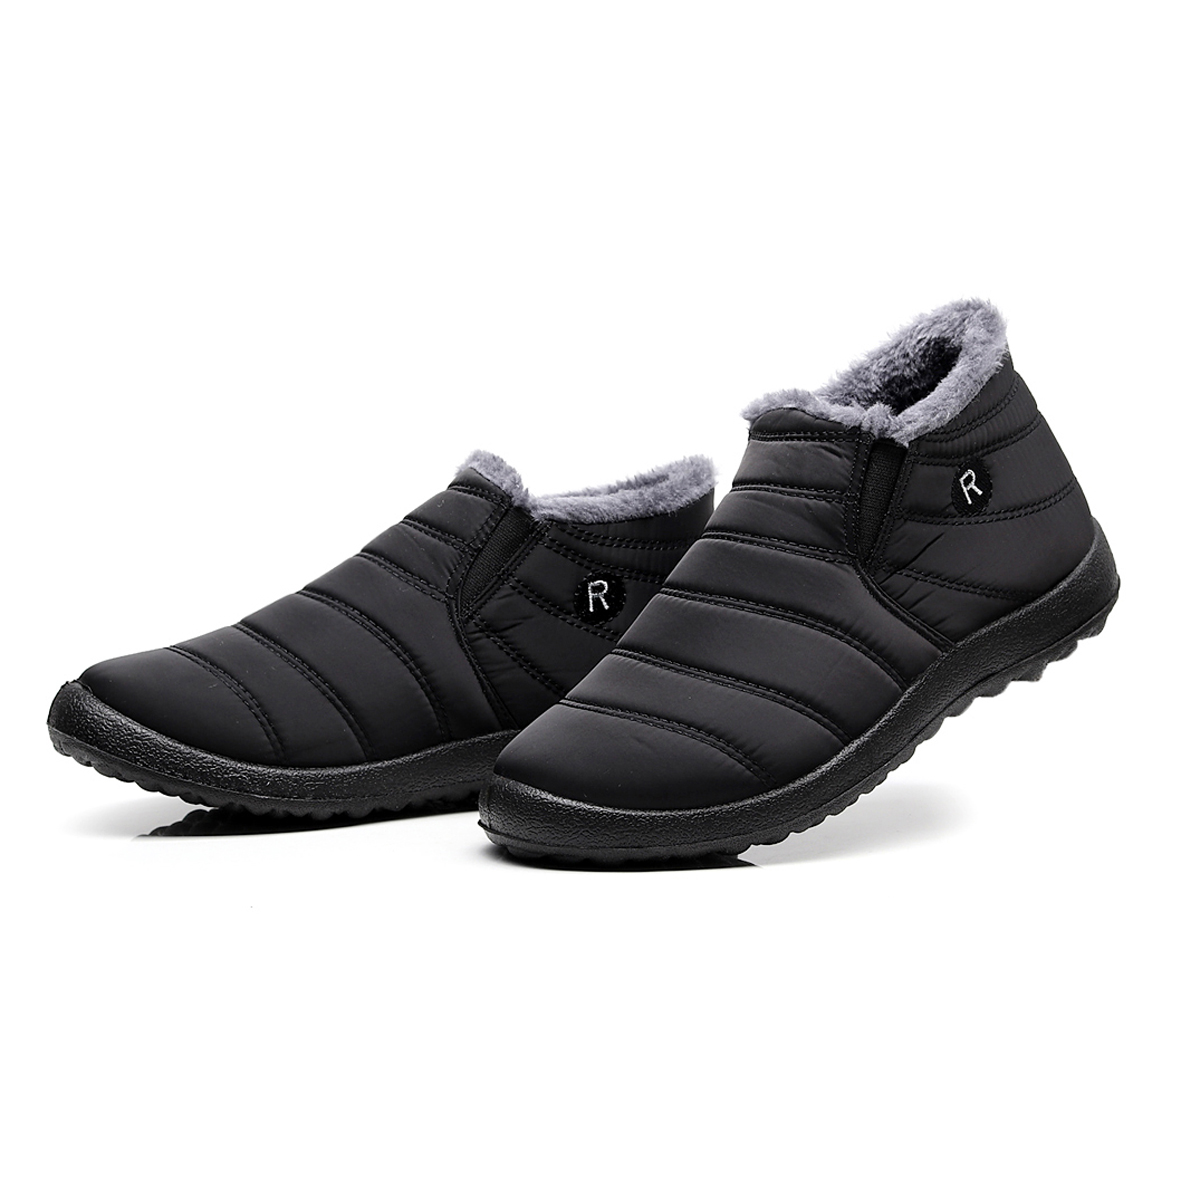 Men Snow Boots Ankle Boots Winter Boots Unisex Couples New Solid Color Plush Inside Anti Skid Bottom Warm Waterproof Ski Shoes